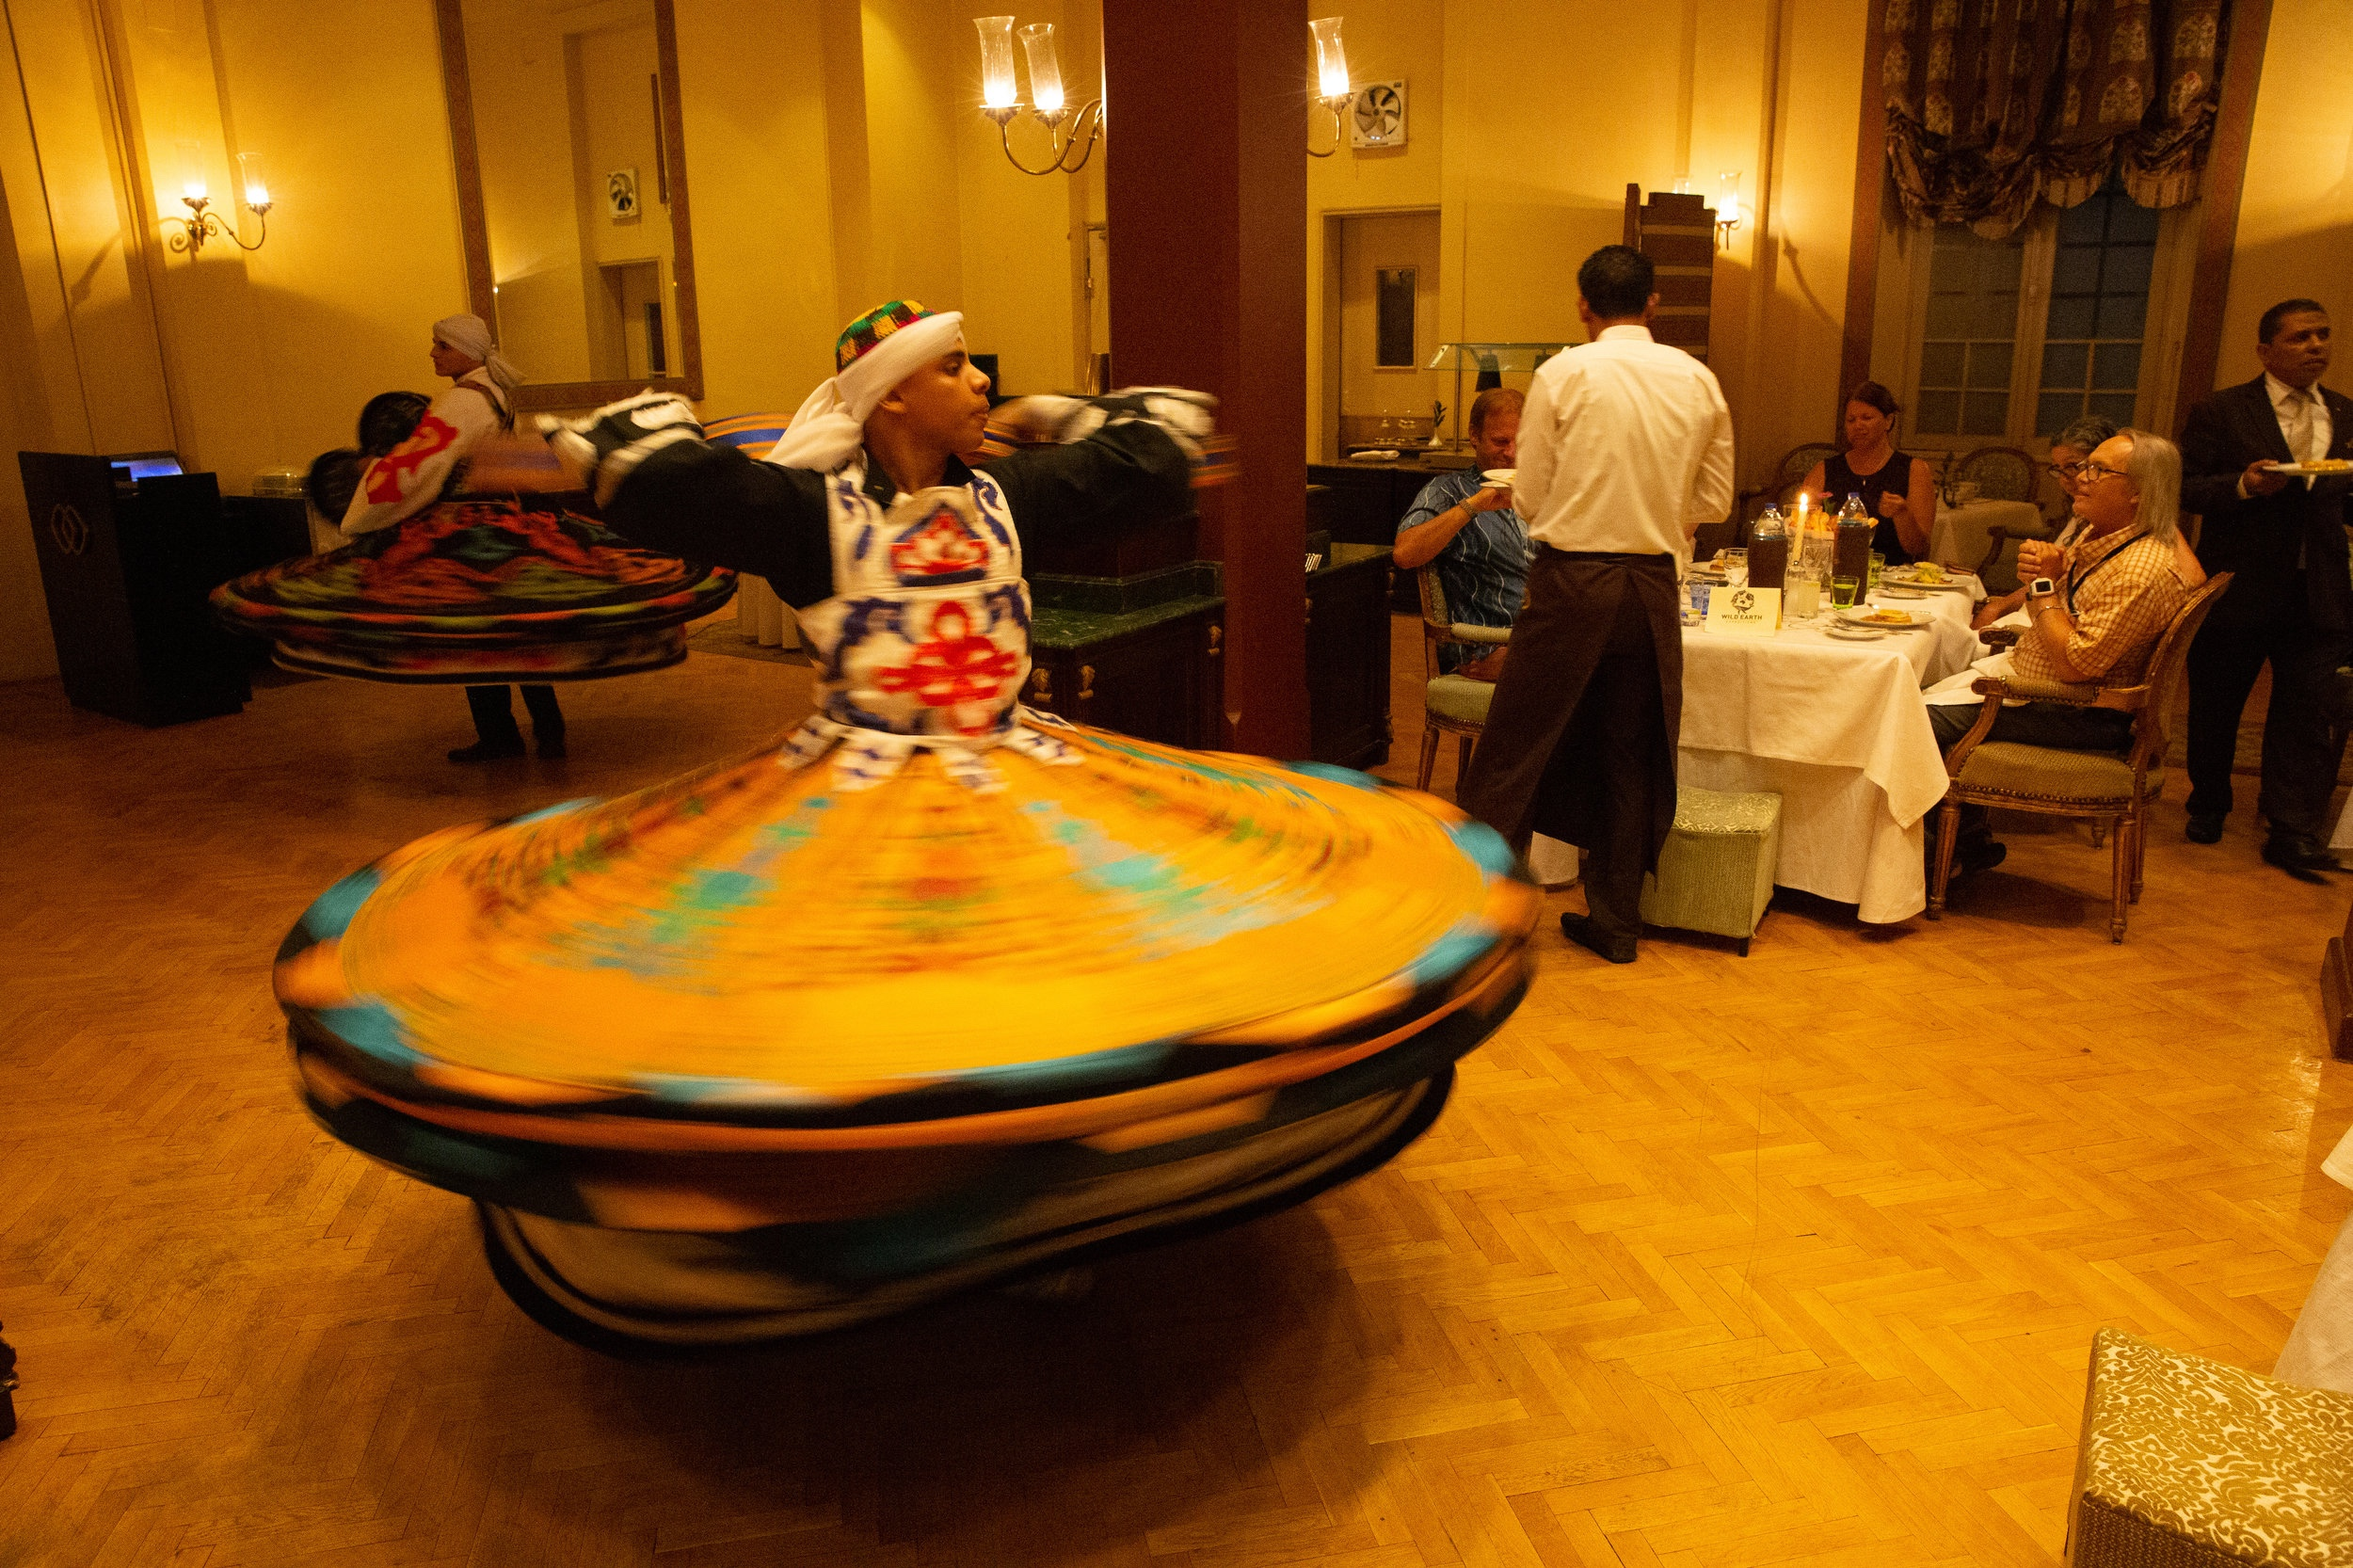 Whirling dervish last night entertainment, Luxor - Egypt - Wild Earth Expeditions